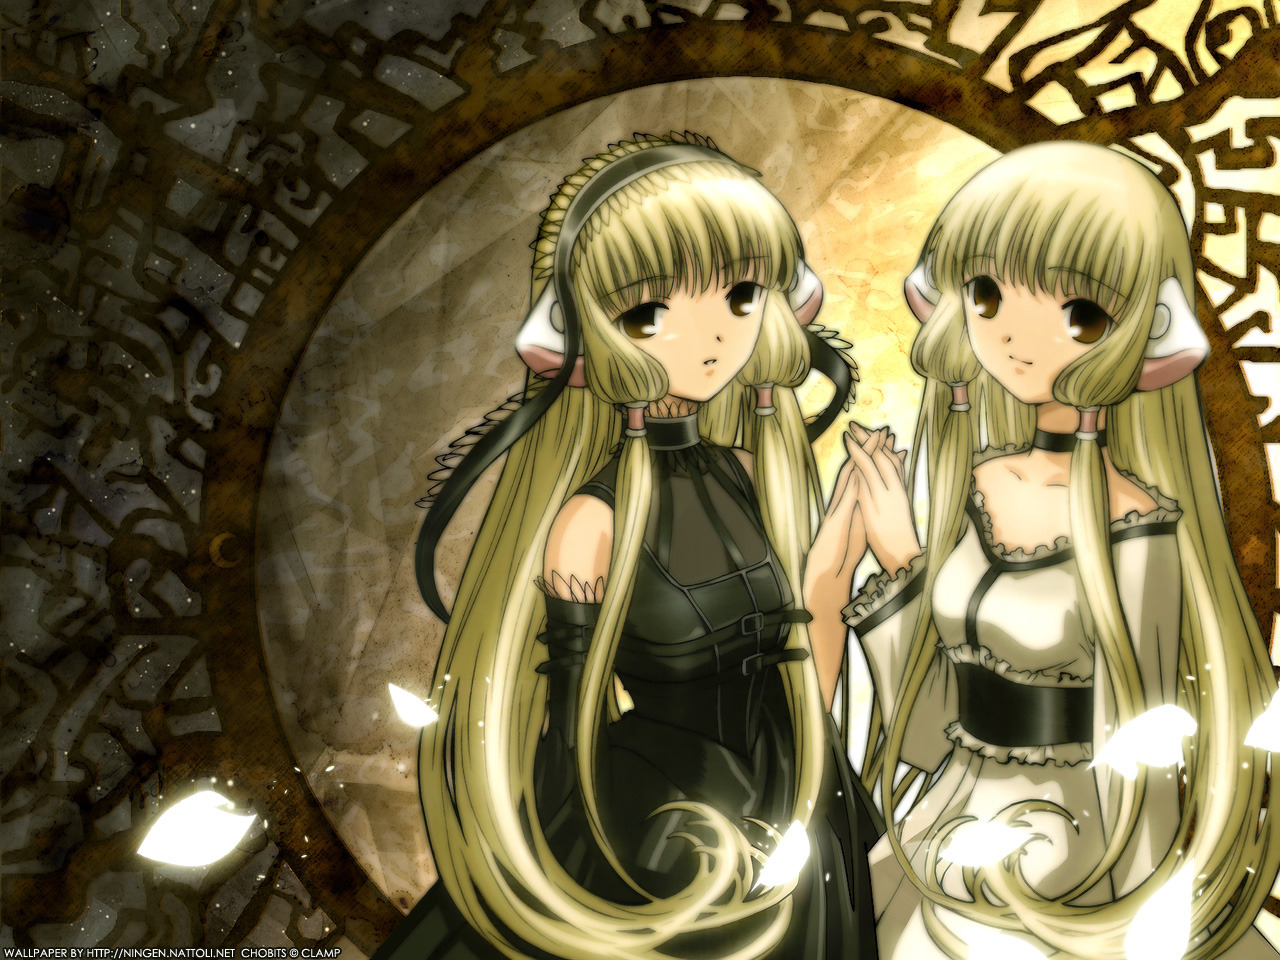 [Anime] Chobits (24/24 castellano, mf)